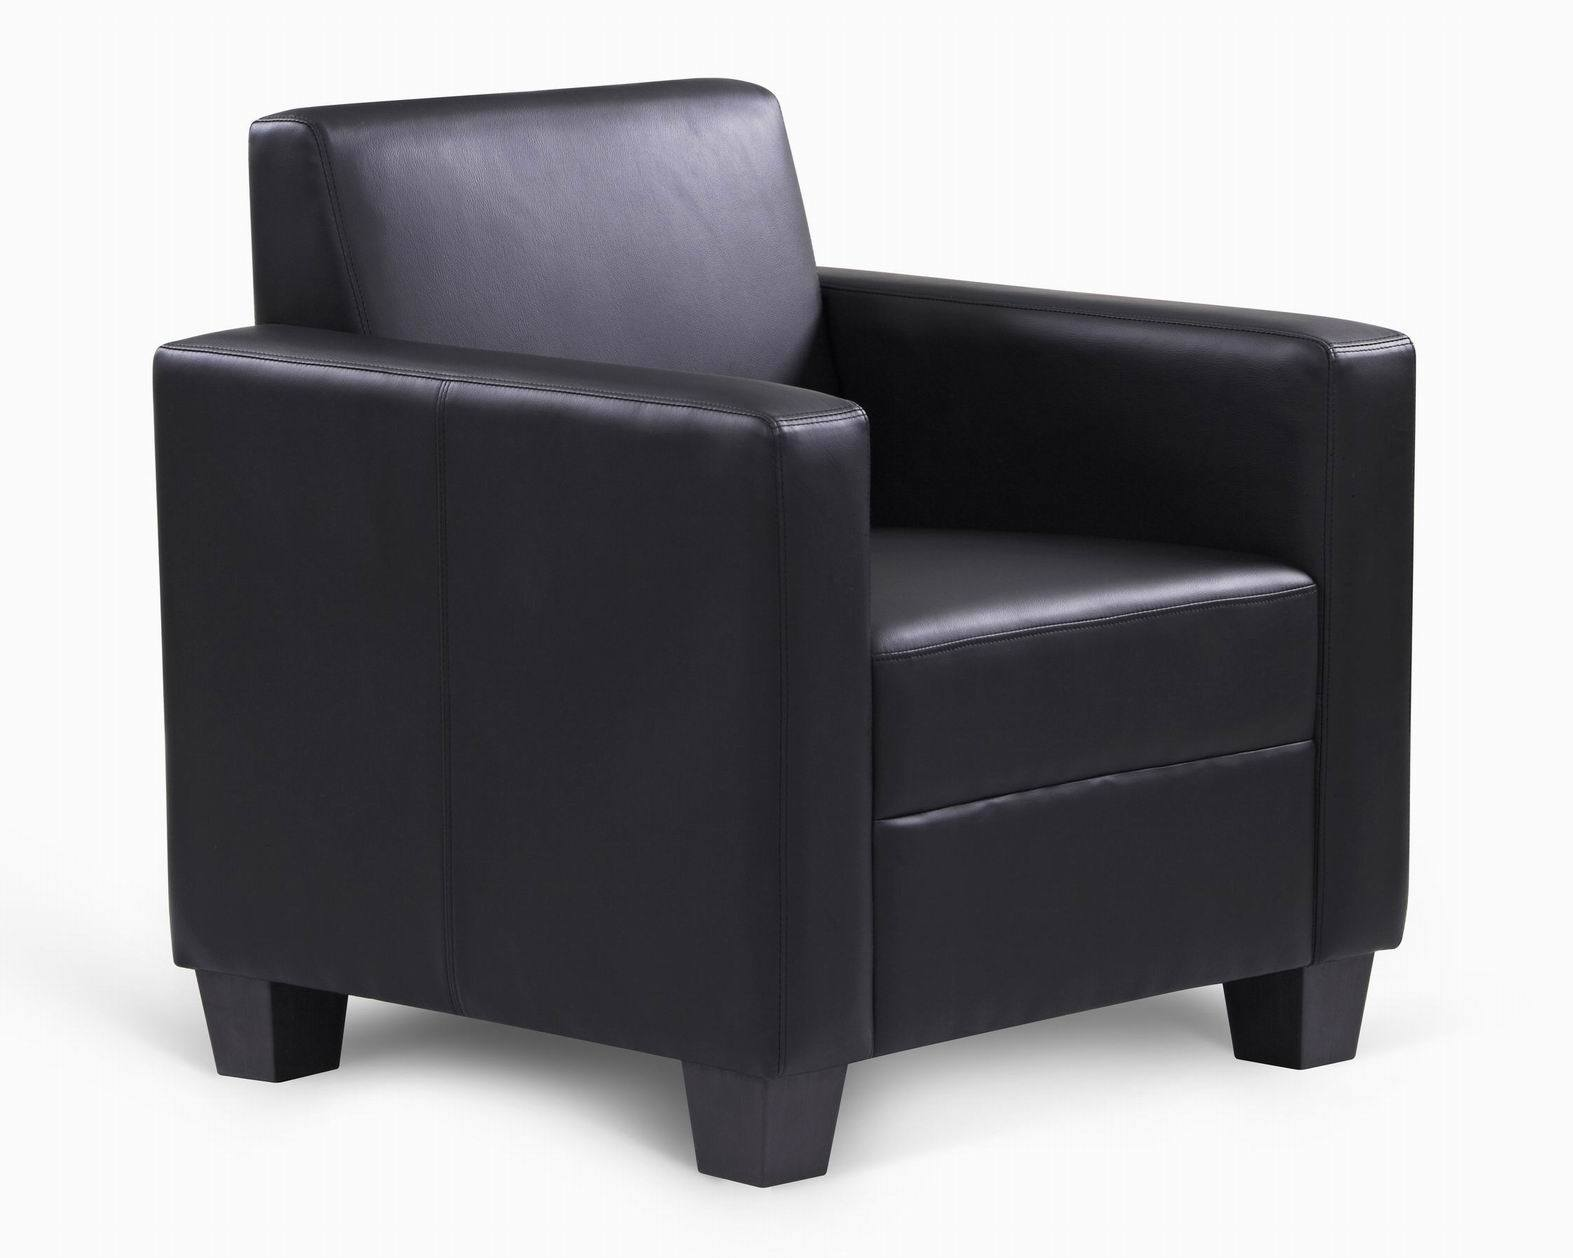 China UK/Ca117 Fire Regulations PU Leather Single Sofa Tub Accent Chair  (FS 902)   China Accent Chair, Tub Chair